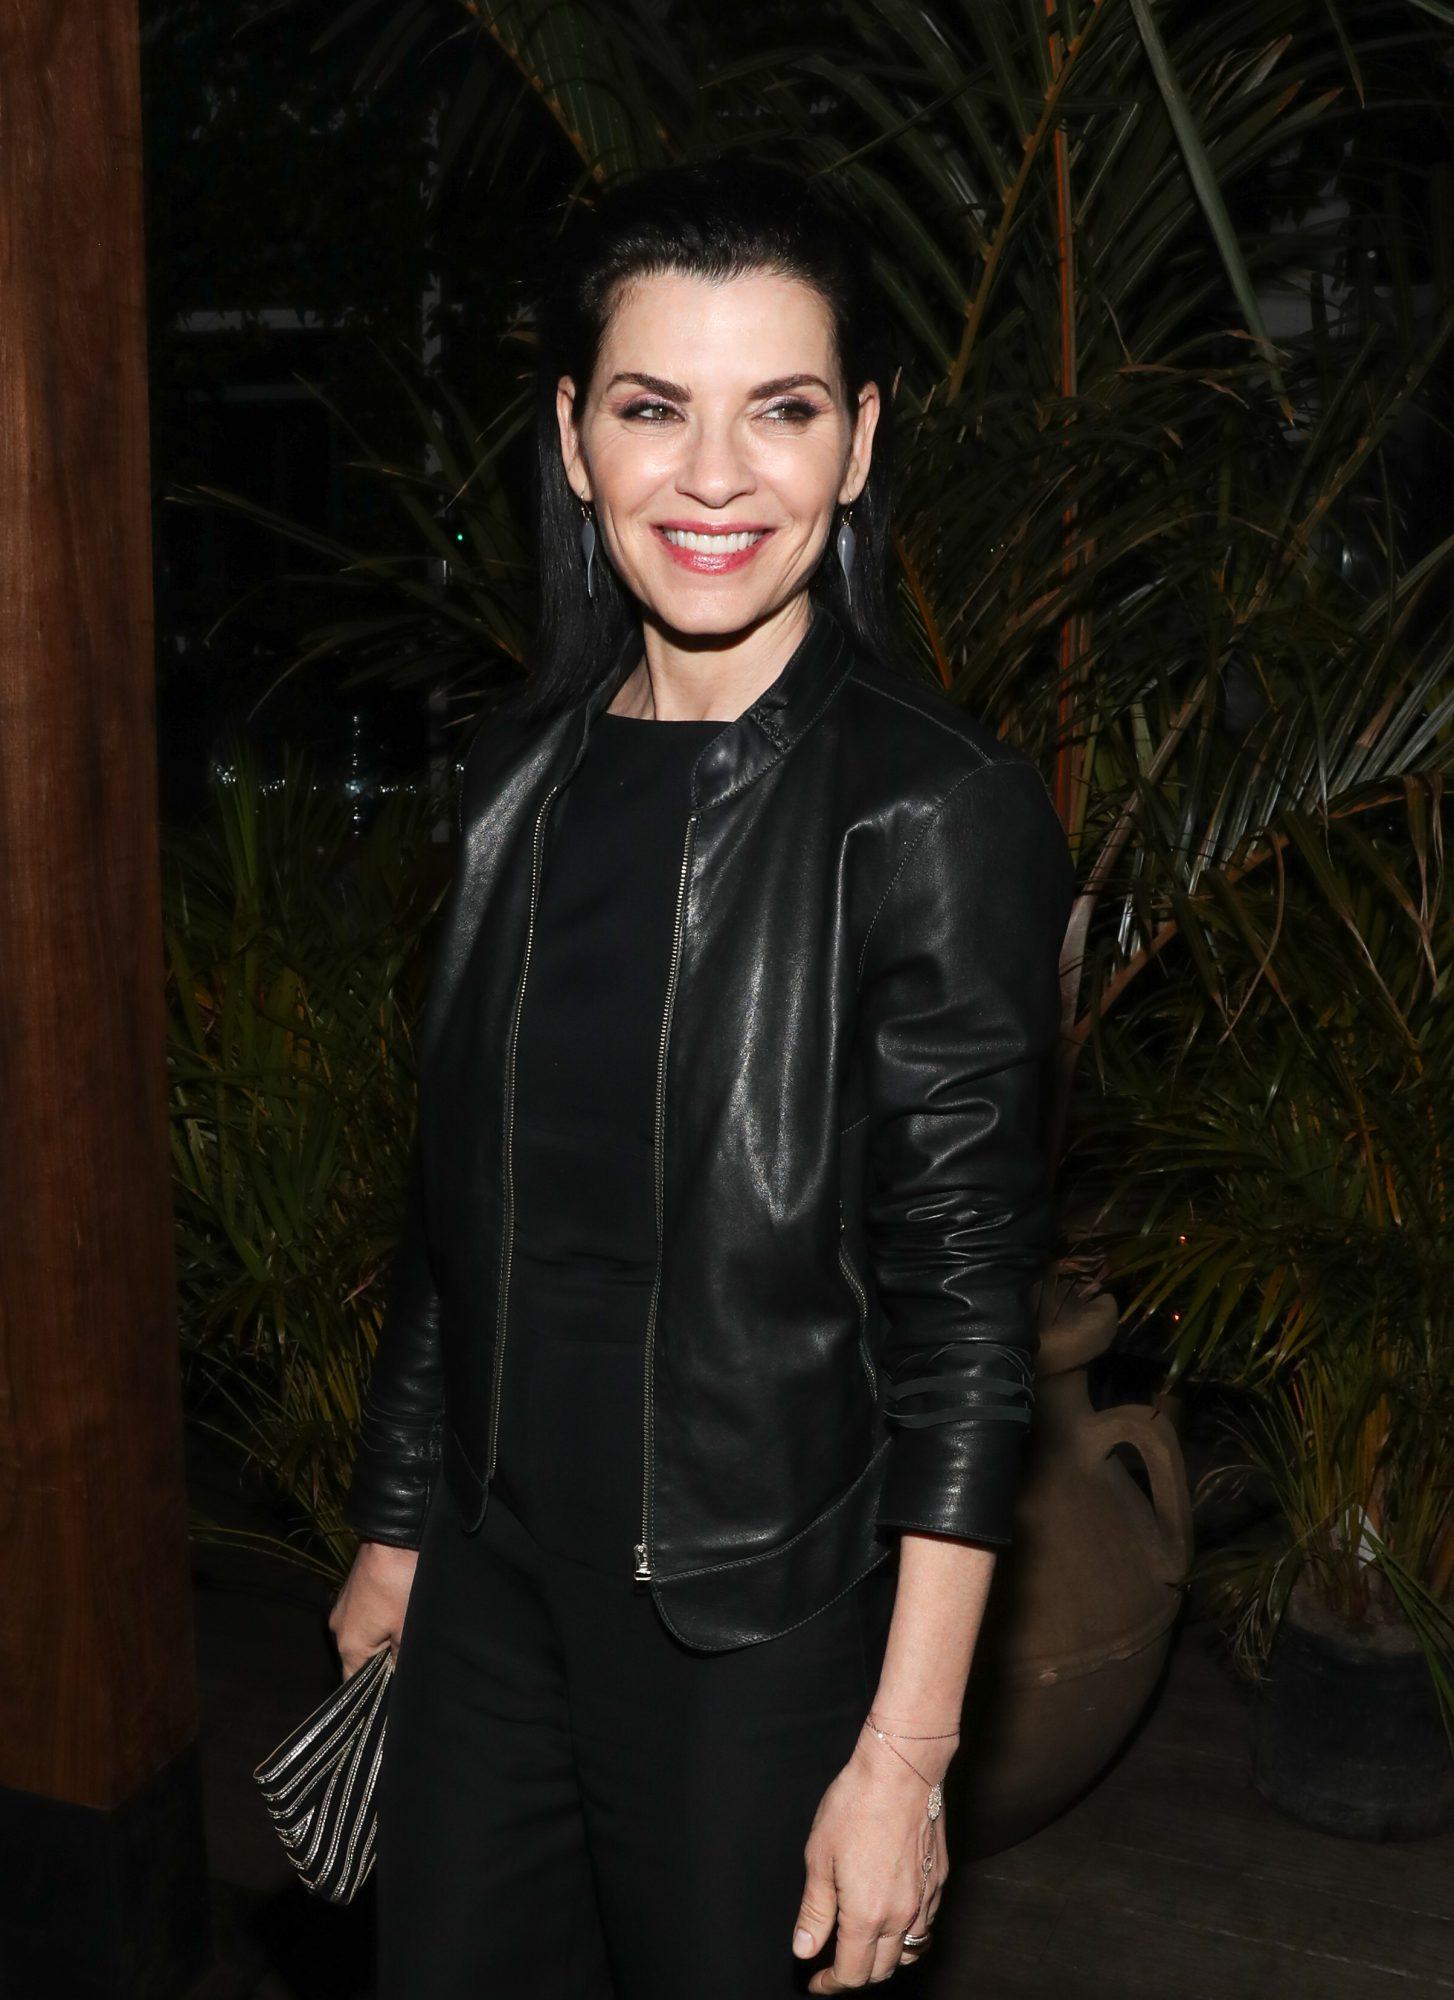 """NEW YORK, NEW YORK - JUNE 11:Actress Julianna Margulies attends the  New York Screening of """"Jett"""" - after party at Gitano Jungle Terraces on June 11, 2019 in New York City. (Photo by Bennett Raglin/Getty Images)"""